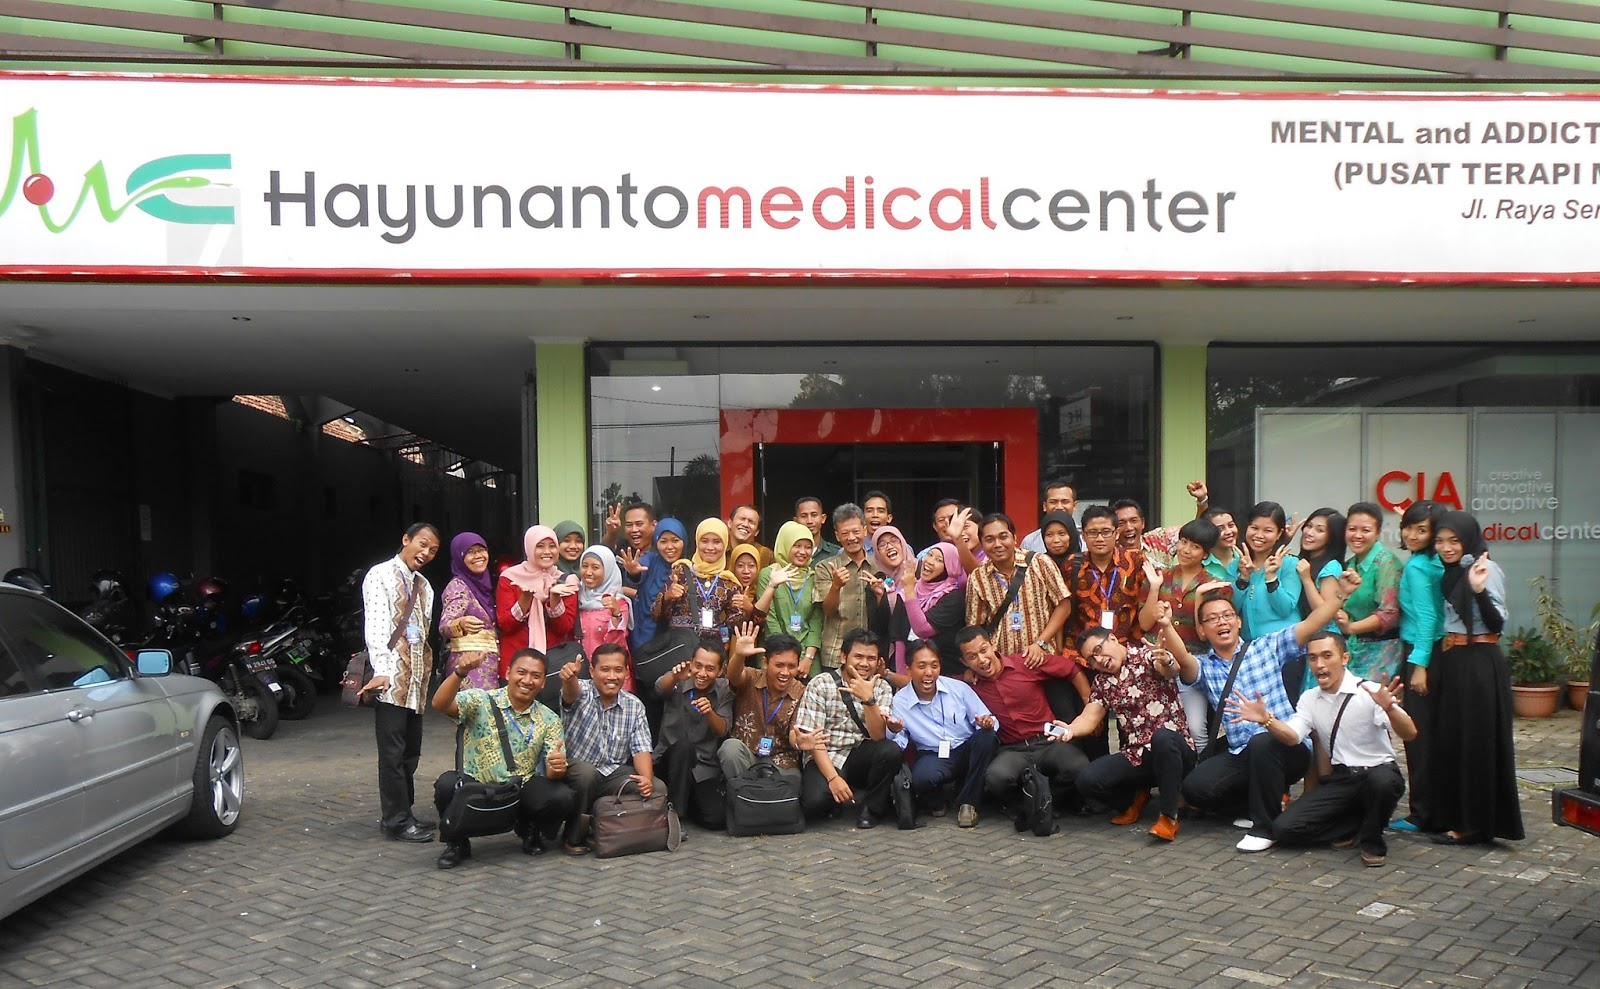 Hayunanto medical center